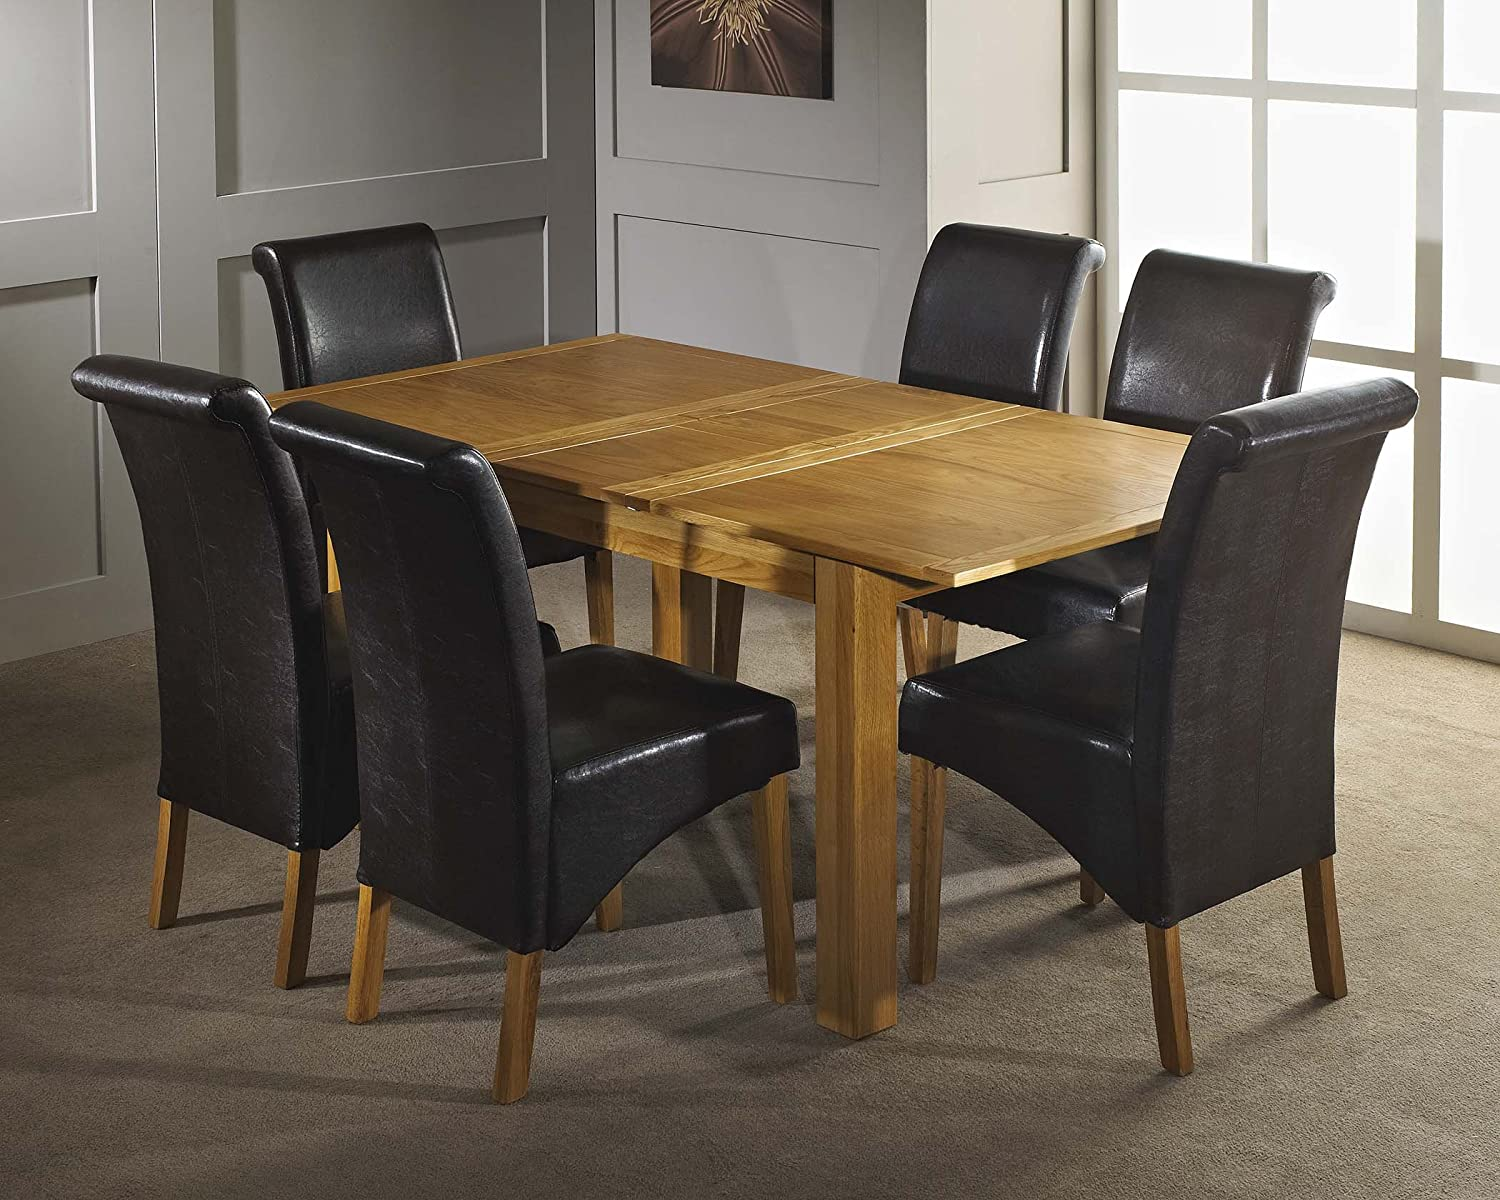 Windsor 140 180cm Extending Dining Table Set with 6 Faux